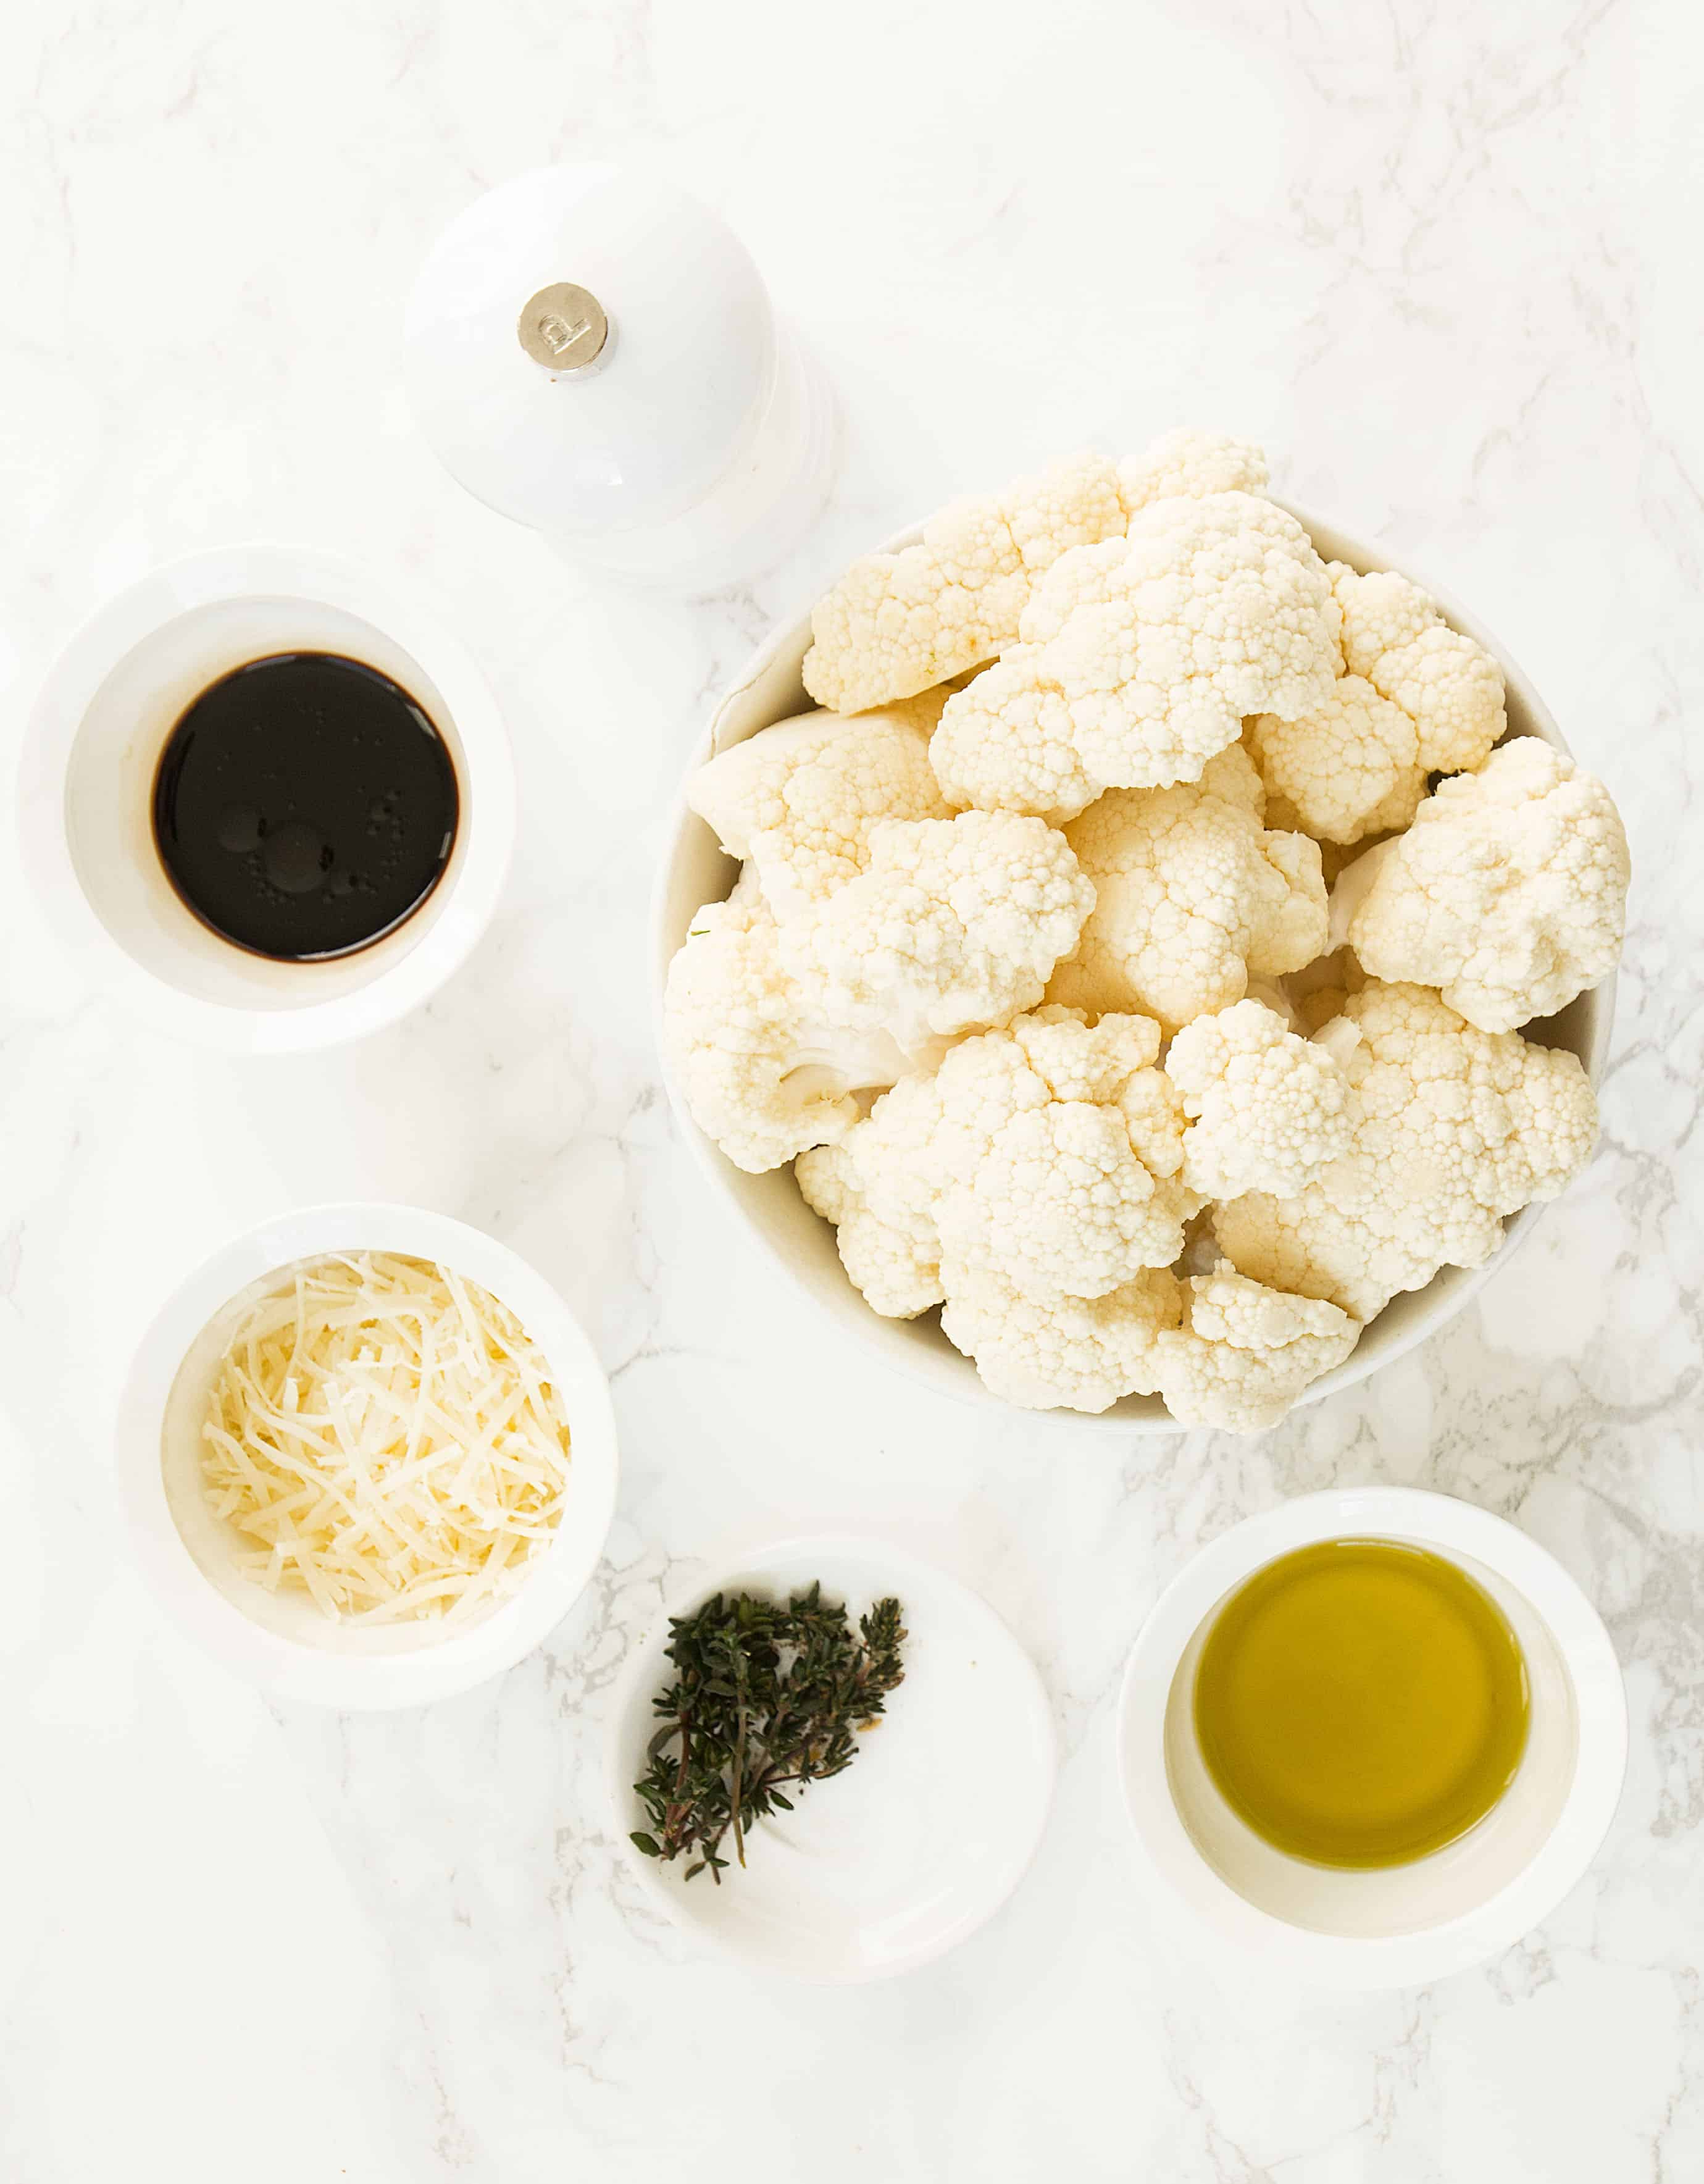 This simple and flavorsomeroasted balsamic cauliflower makes the perfect, healthy and crowd-pleaser side dishand it's ready in less than 30 minutes.